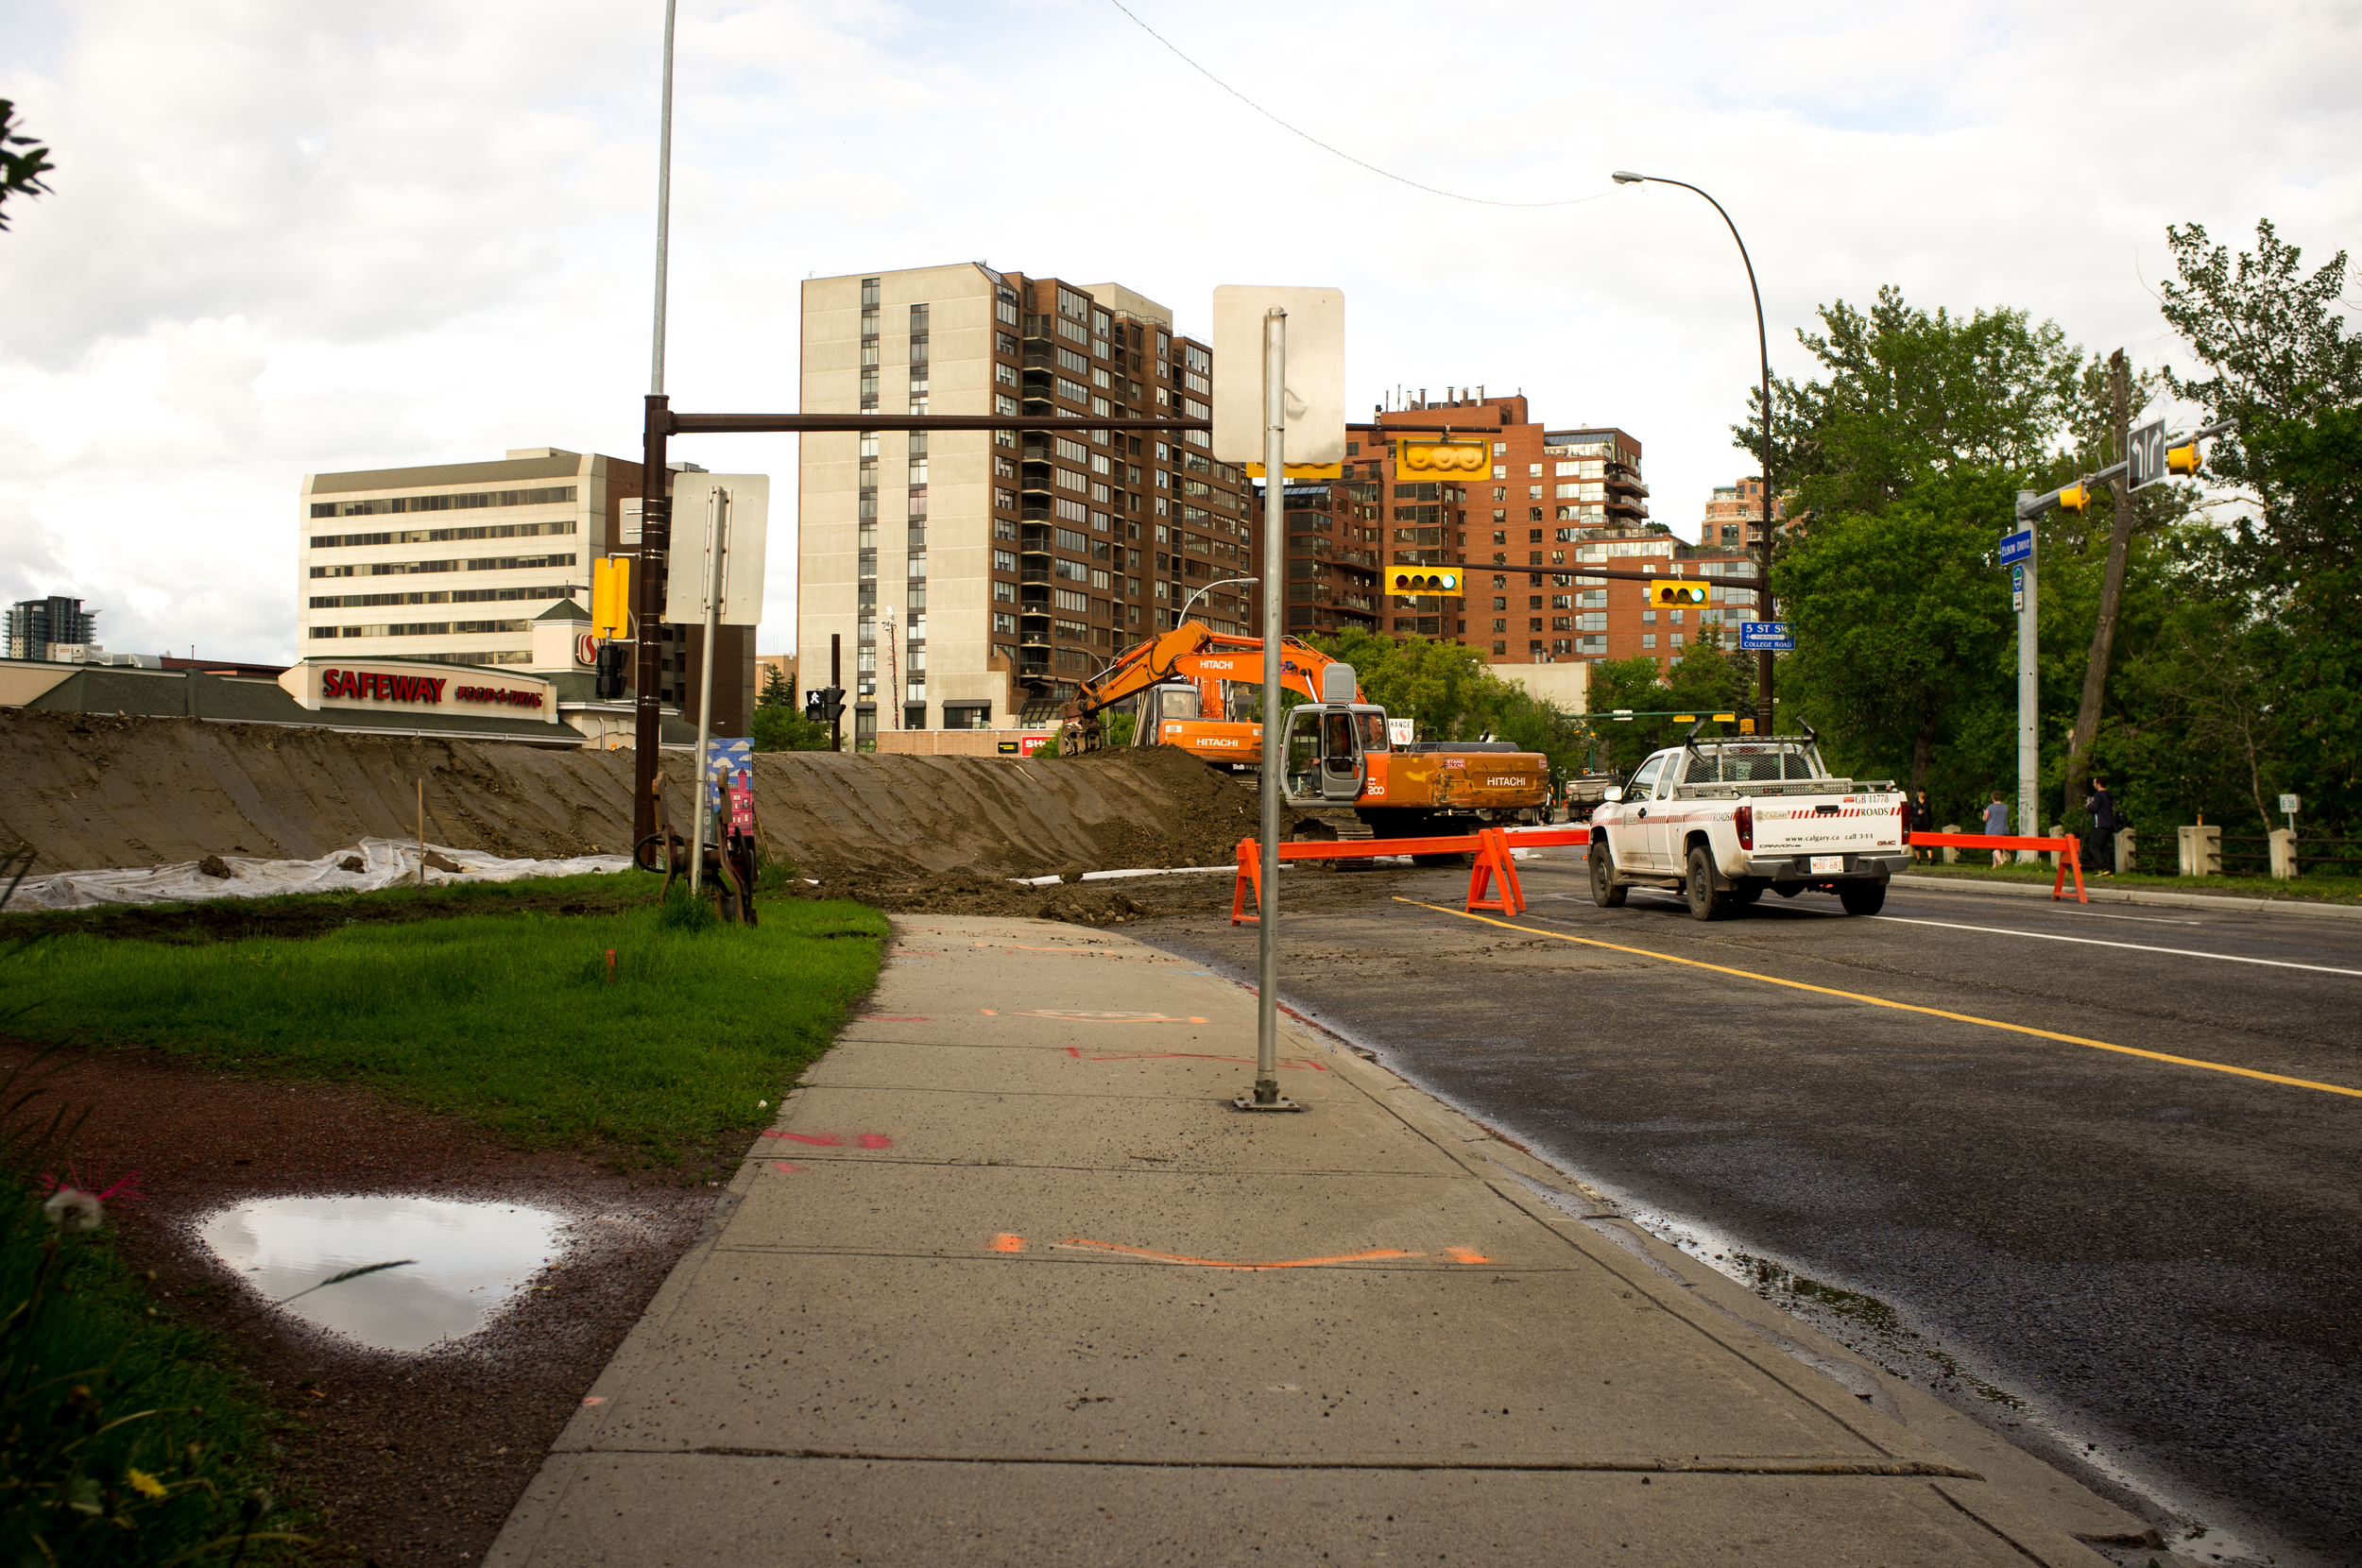 Mission. Workers rush to build an earthen berm in the same location as the flood of 2005. A City of Calgary Roads worker told me they had 25 dumptrucks on the job, working in constant rotation at this location—similar setups were in operation around the downtown core.